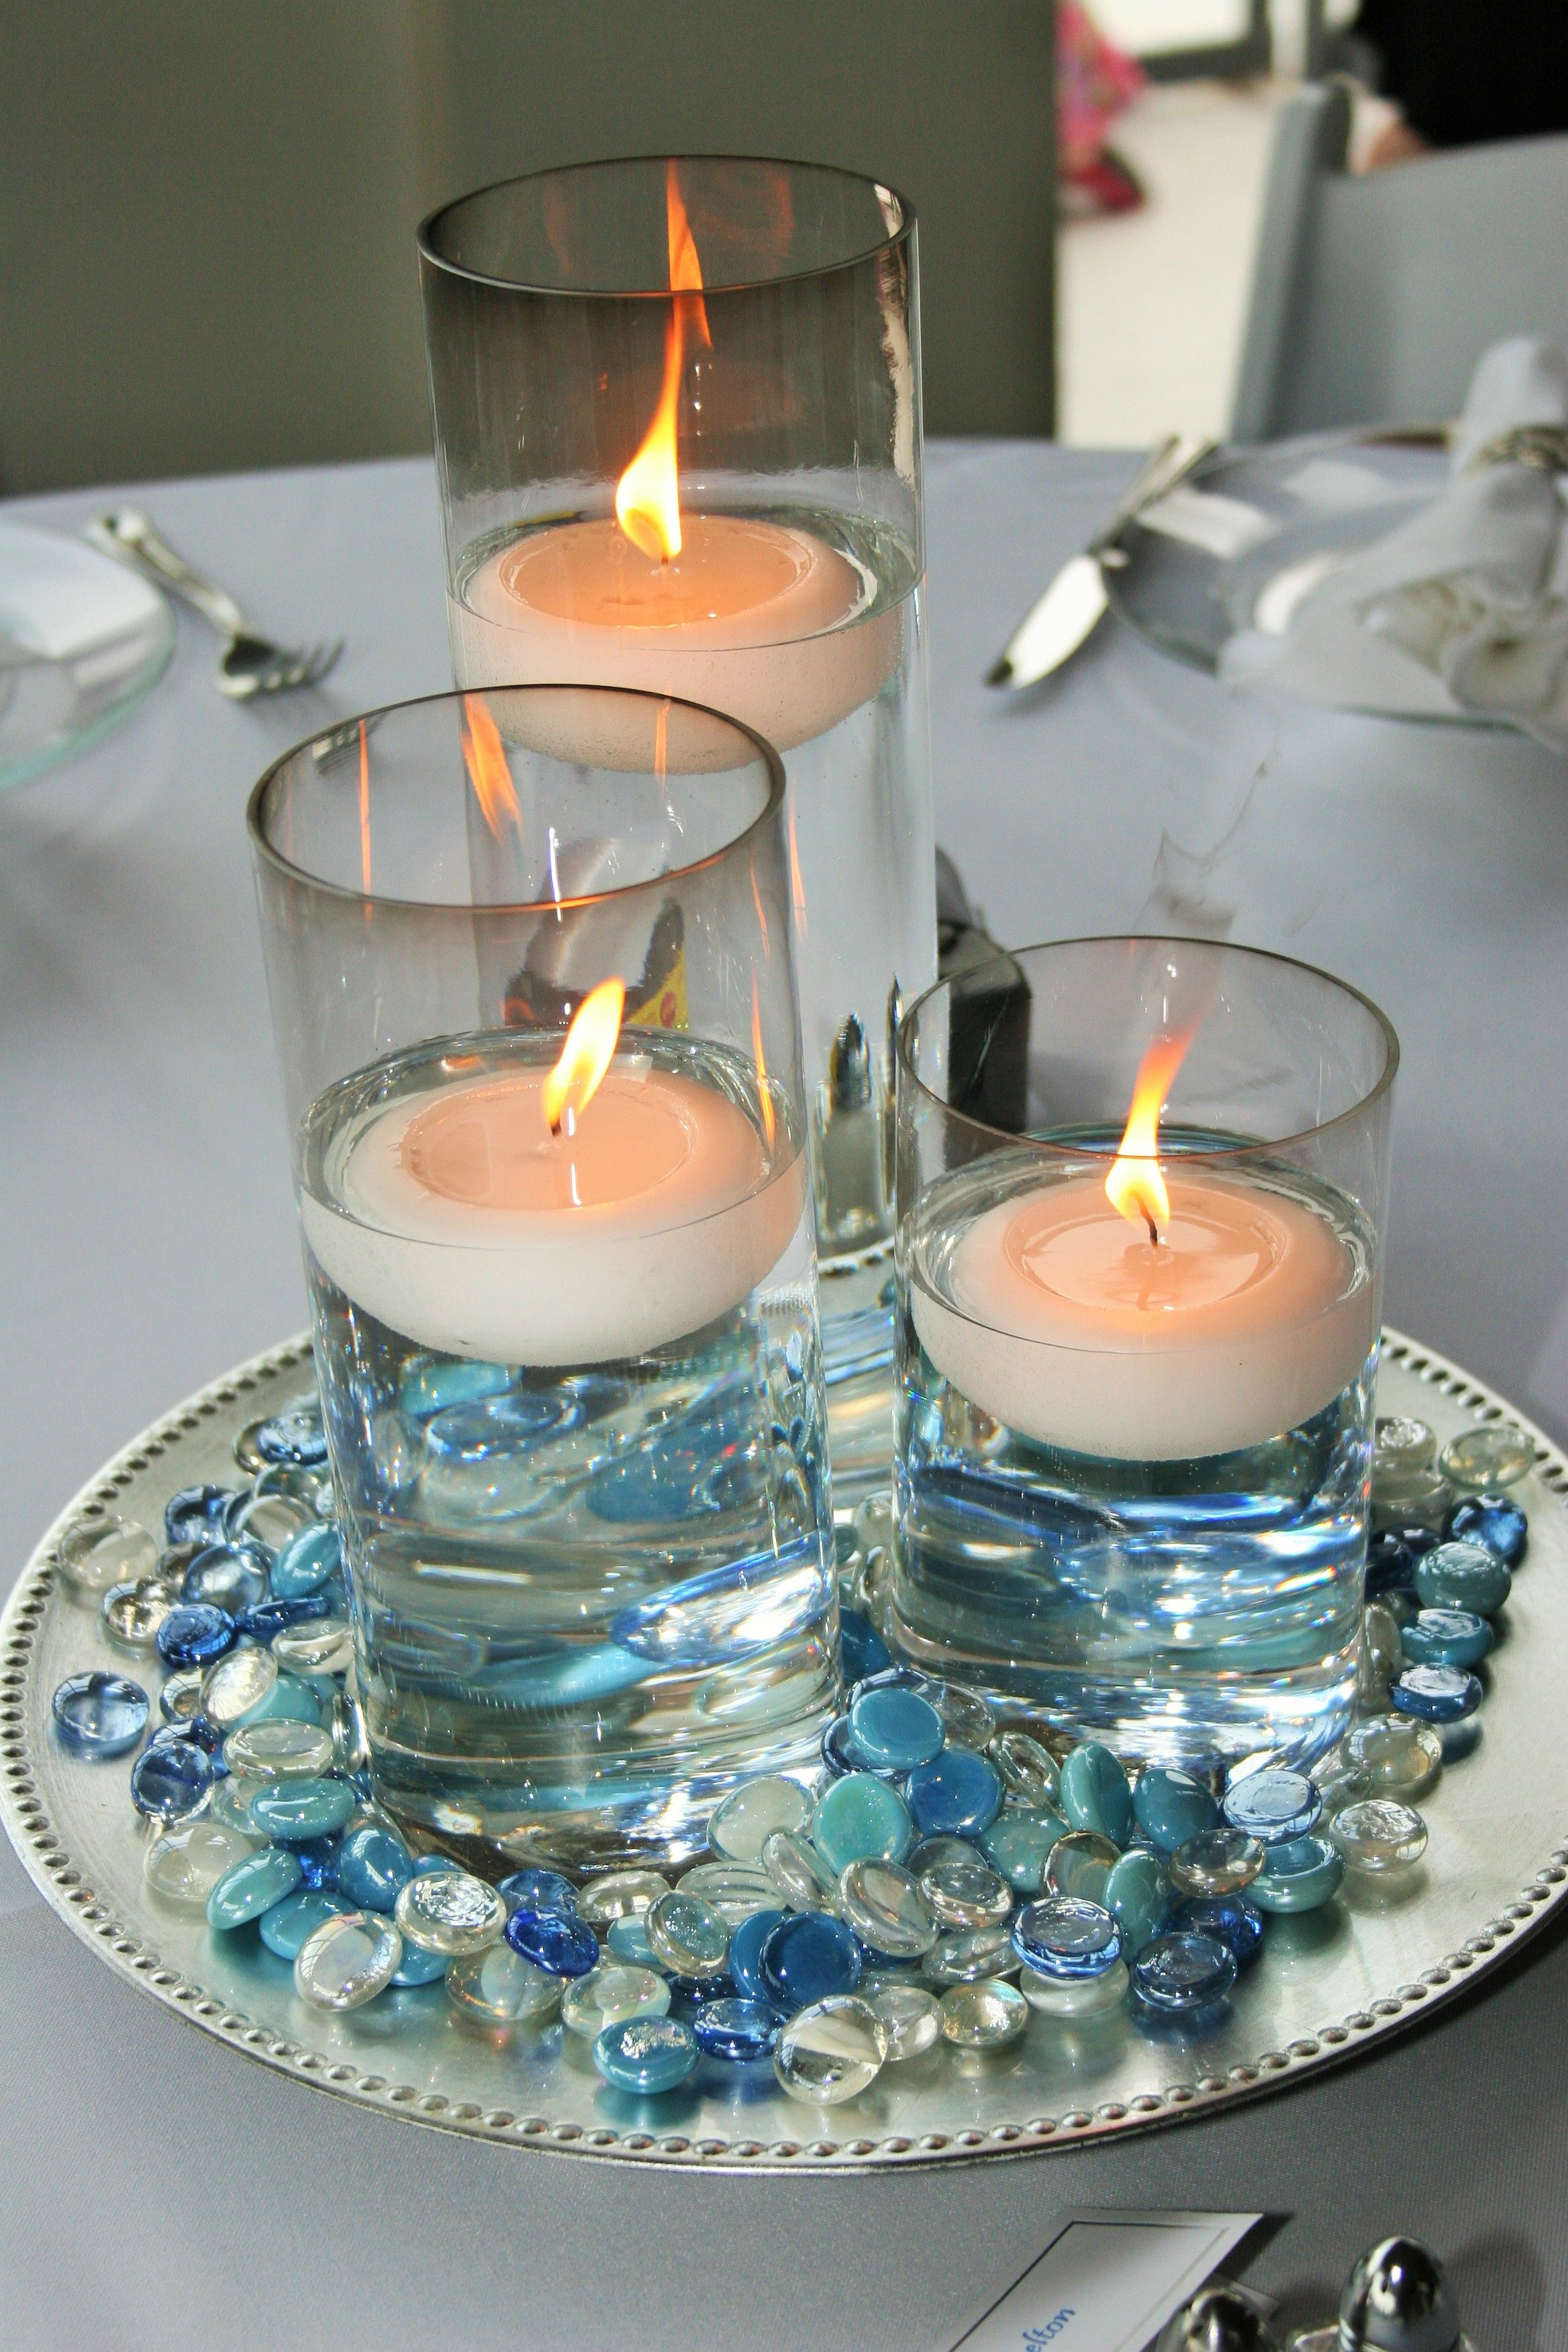 3 glass cylinder wedding centerpiece with floating candles 3 glass cylinder wedding centerpiece with floating candles surrounded by blue and clear glass gems floridaeventfo Gallery